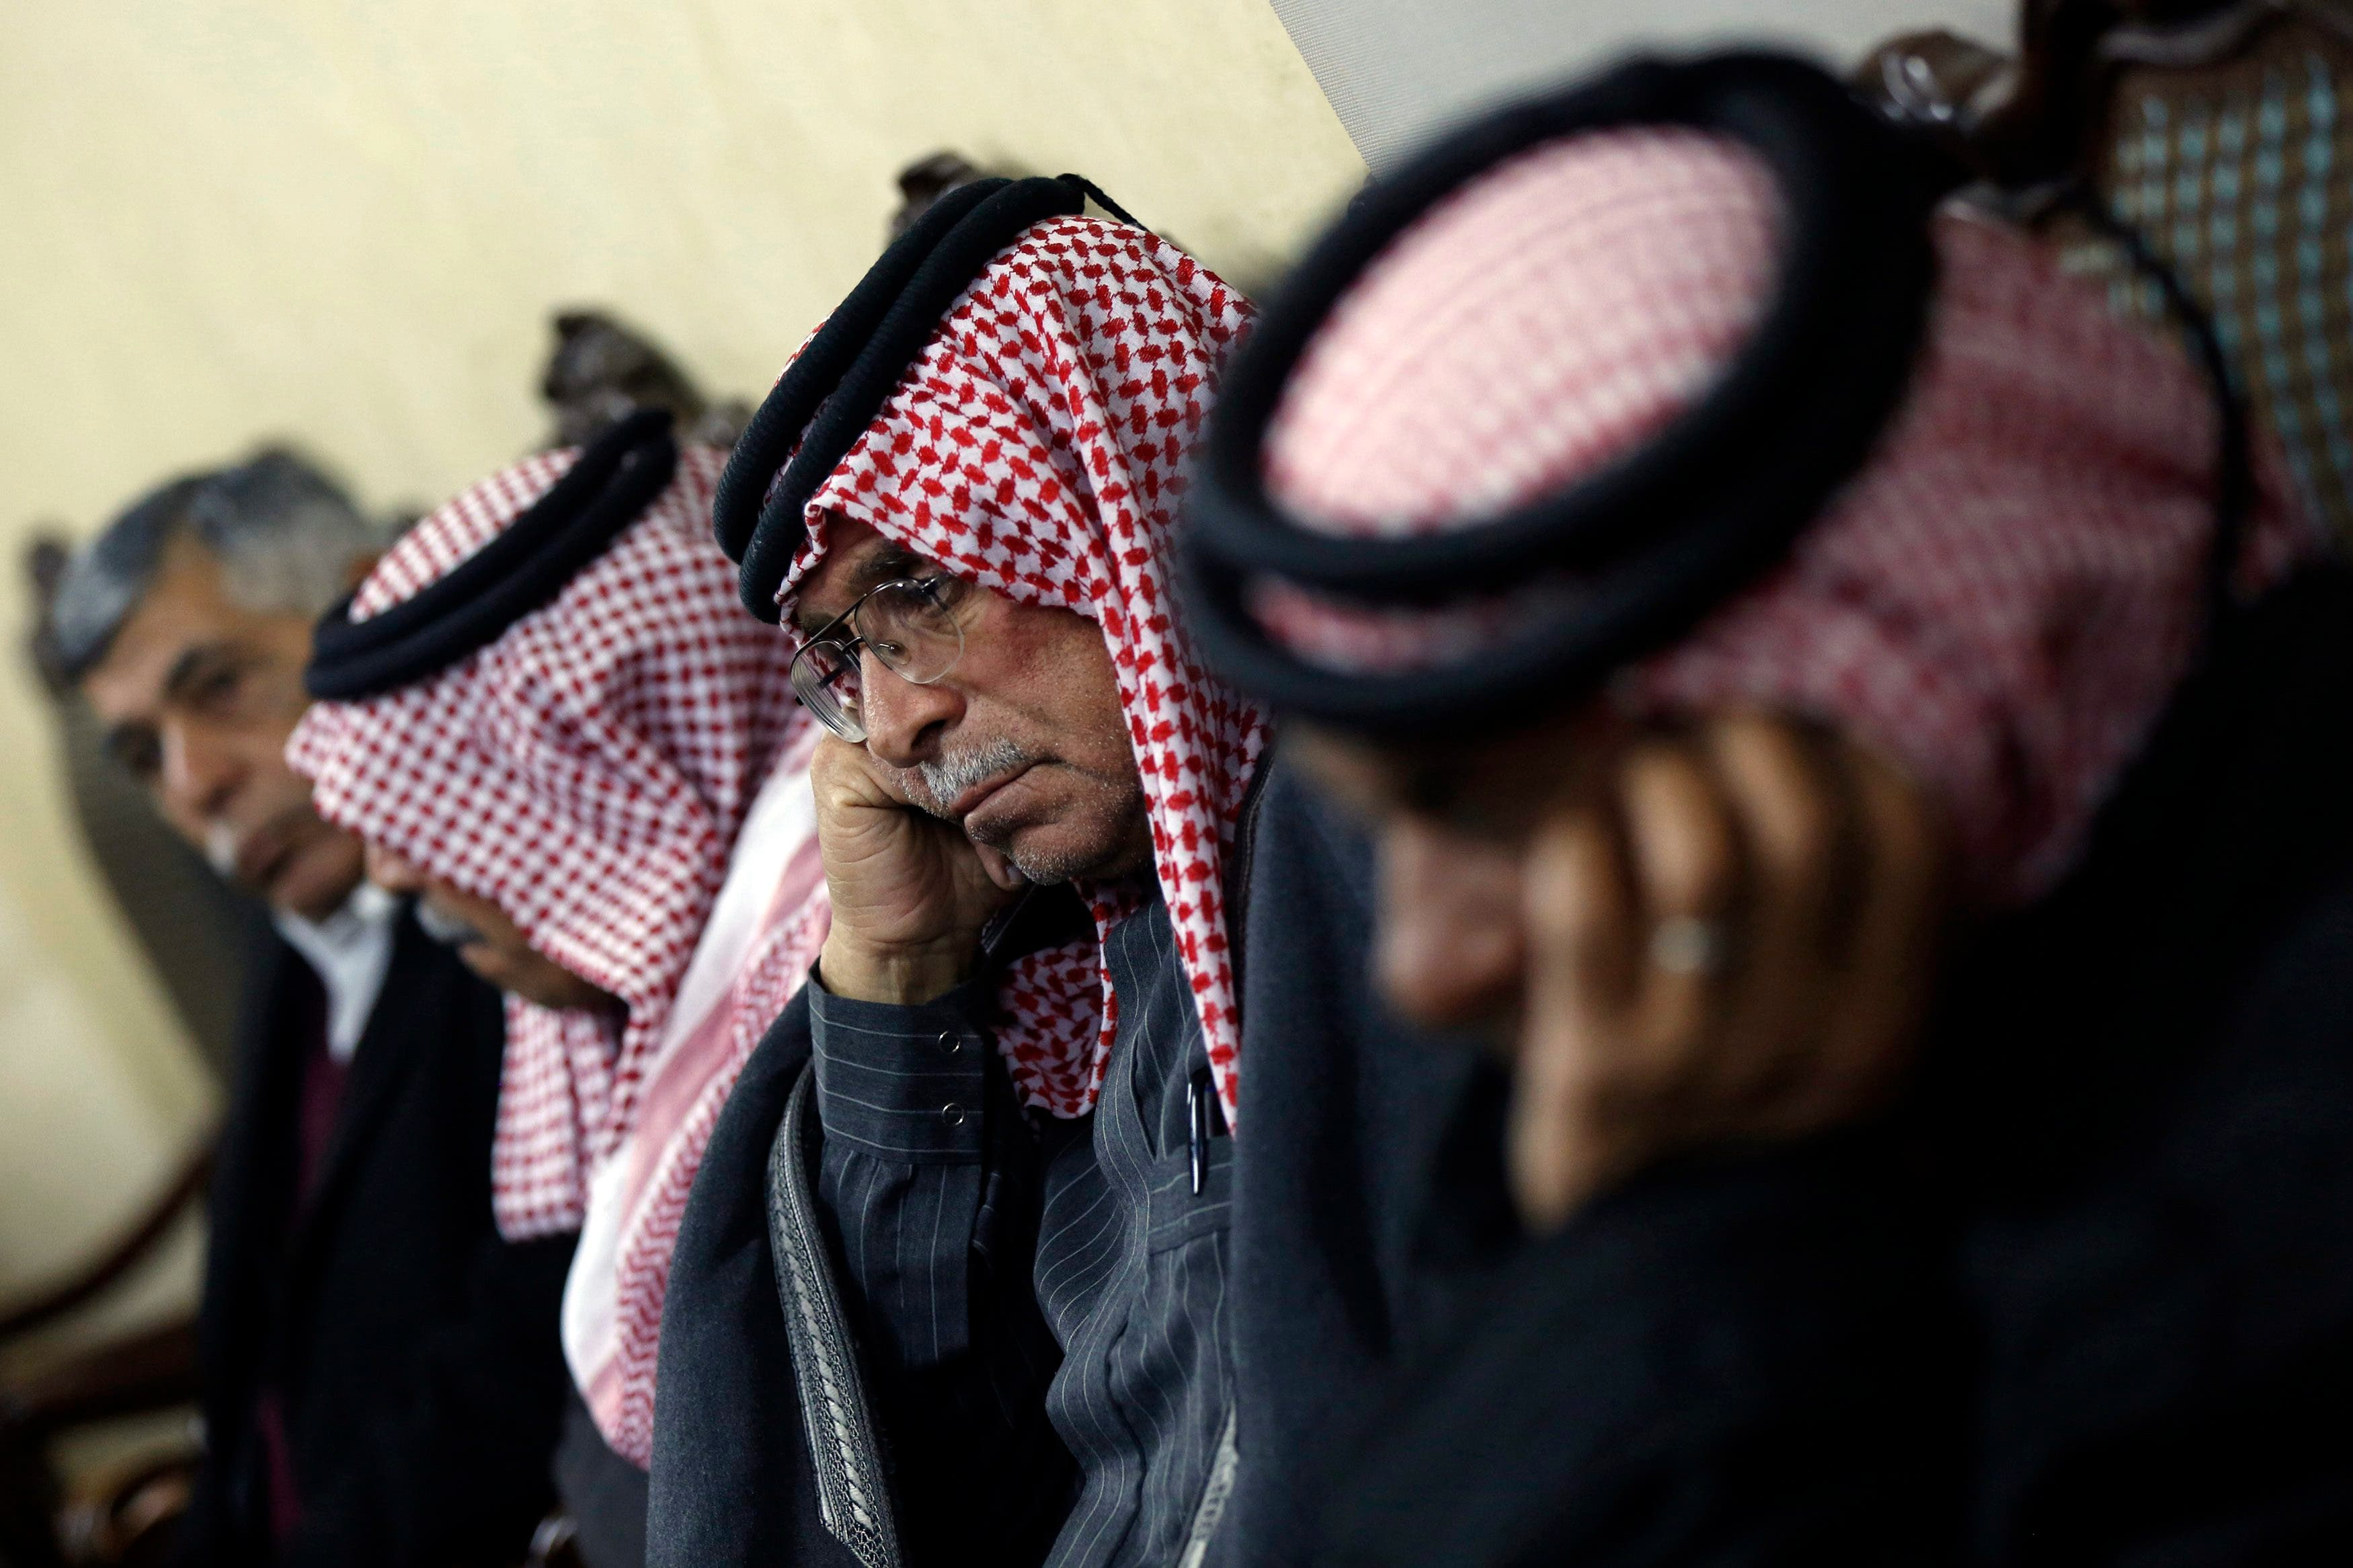 Safi Yousef (2nd R), father of captive Jordanian pilot Muath al-Kasaesbeh, listens to a statement released by ISIS, at his clan's headquarters in Amman Jan. 28, 2015. (Reuters)